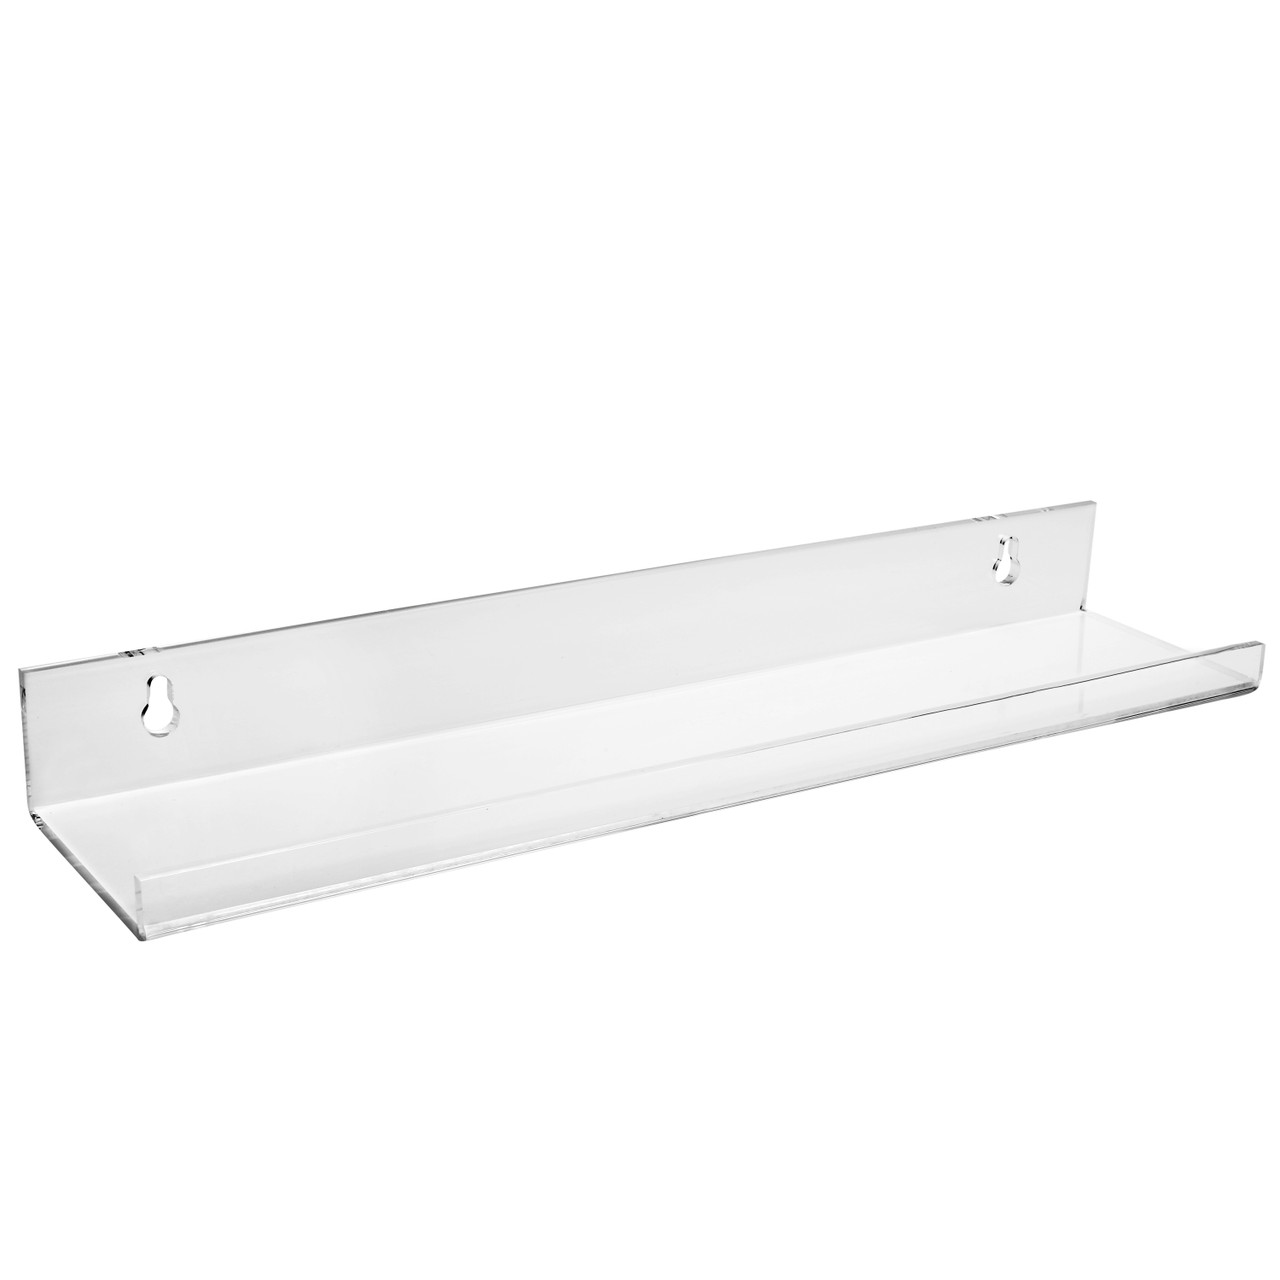 15 Acrylic Floating Wall Mounting Shelf